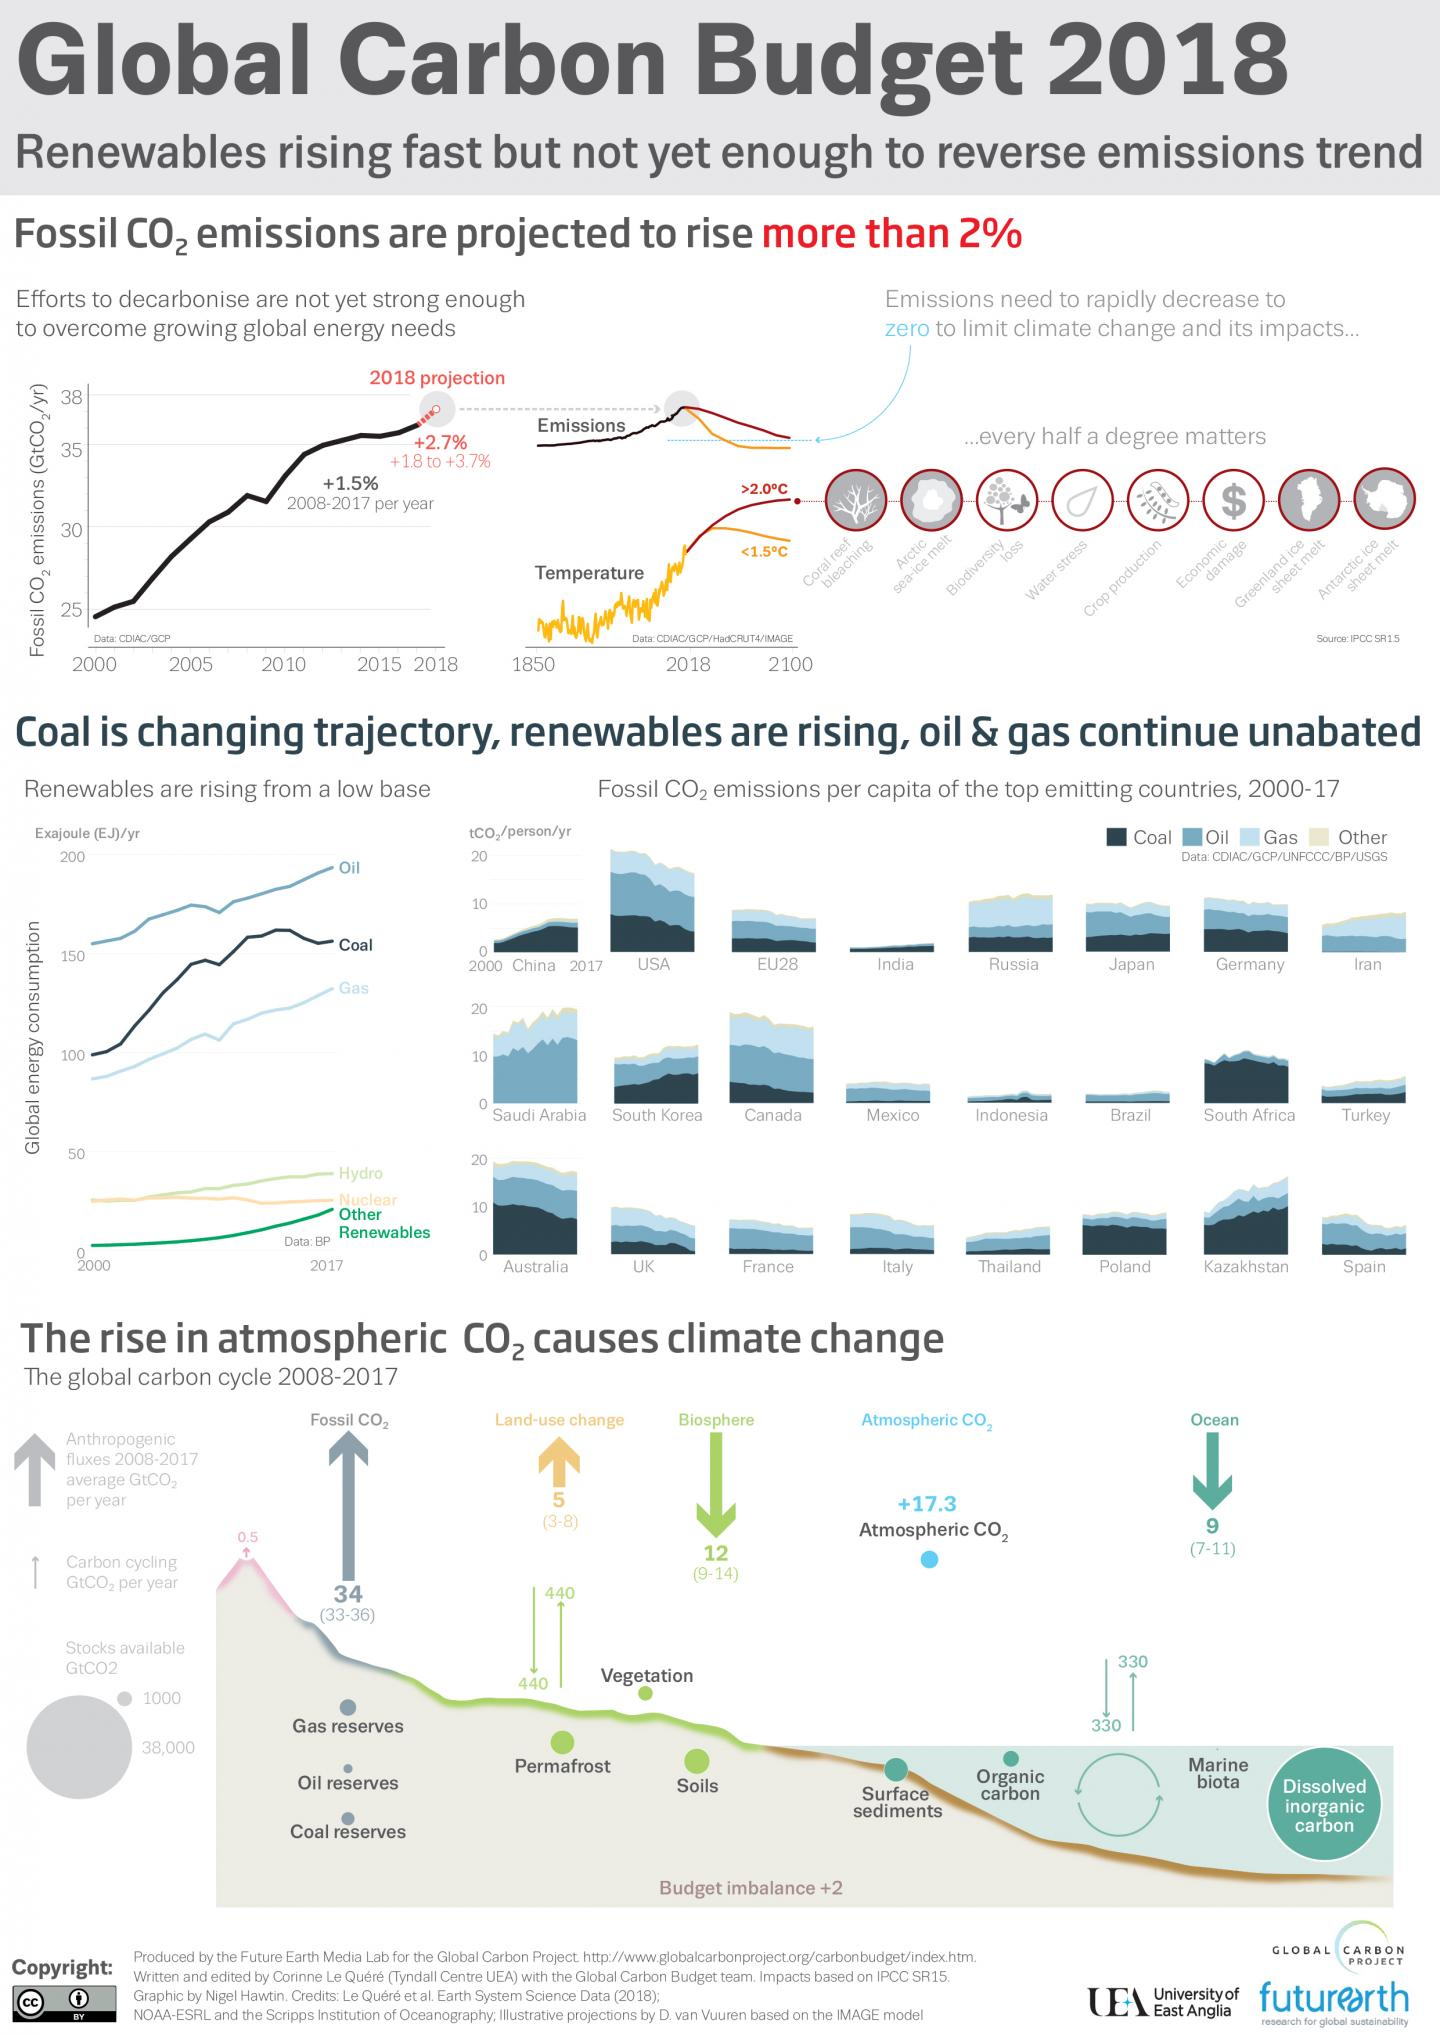 Global Carbon Budget Infographic 2018